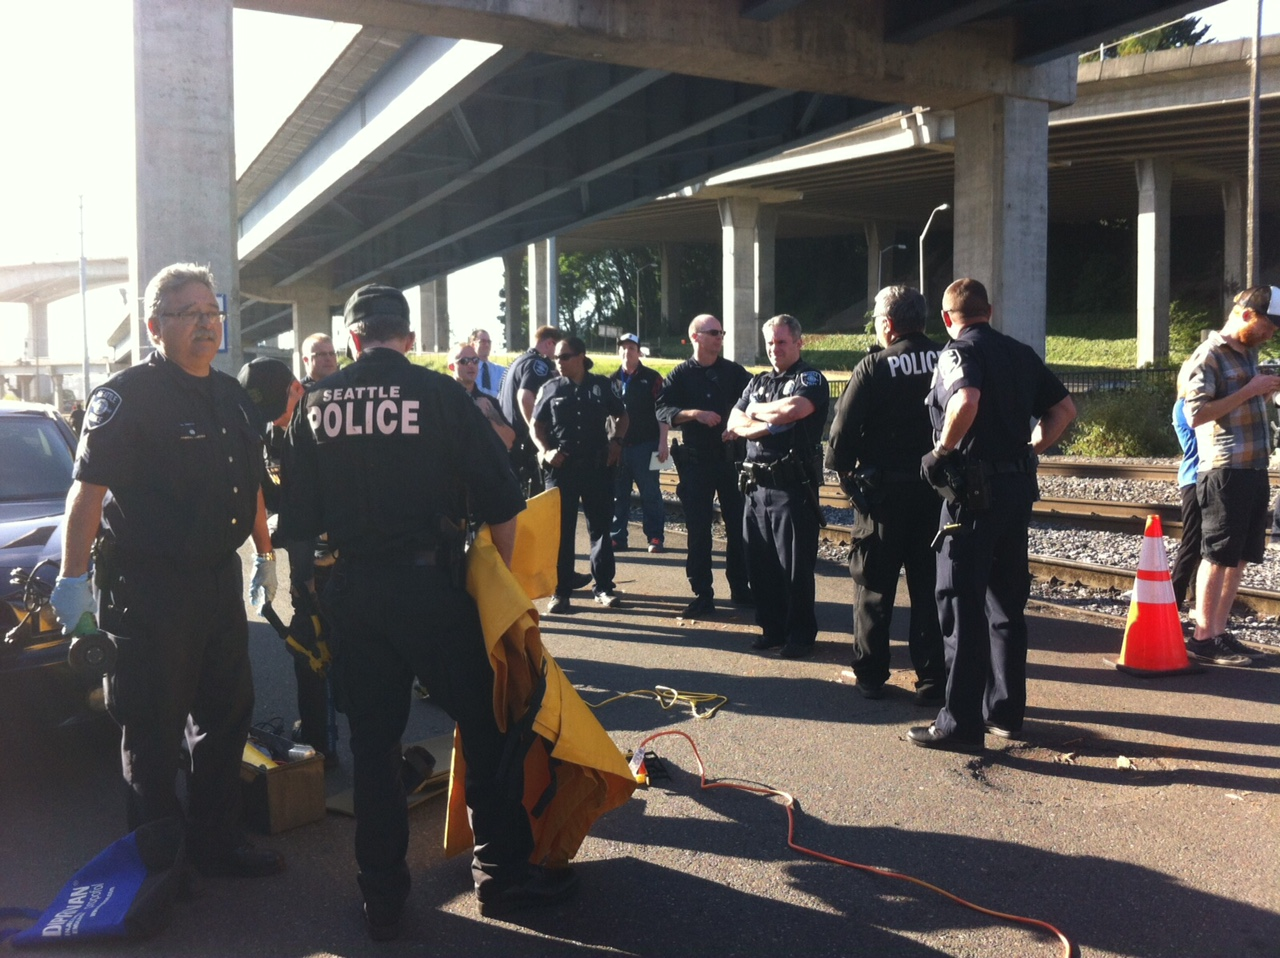 There are fewer cops on site today than at the protests over the weekend. A BNSF spokesperson says trains have been stopped since 6:30 a.m.